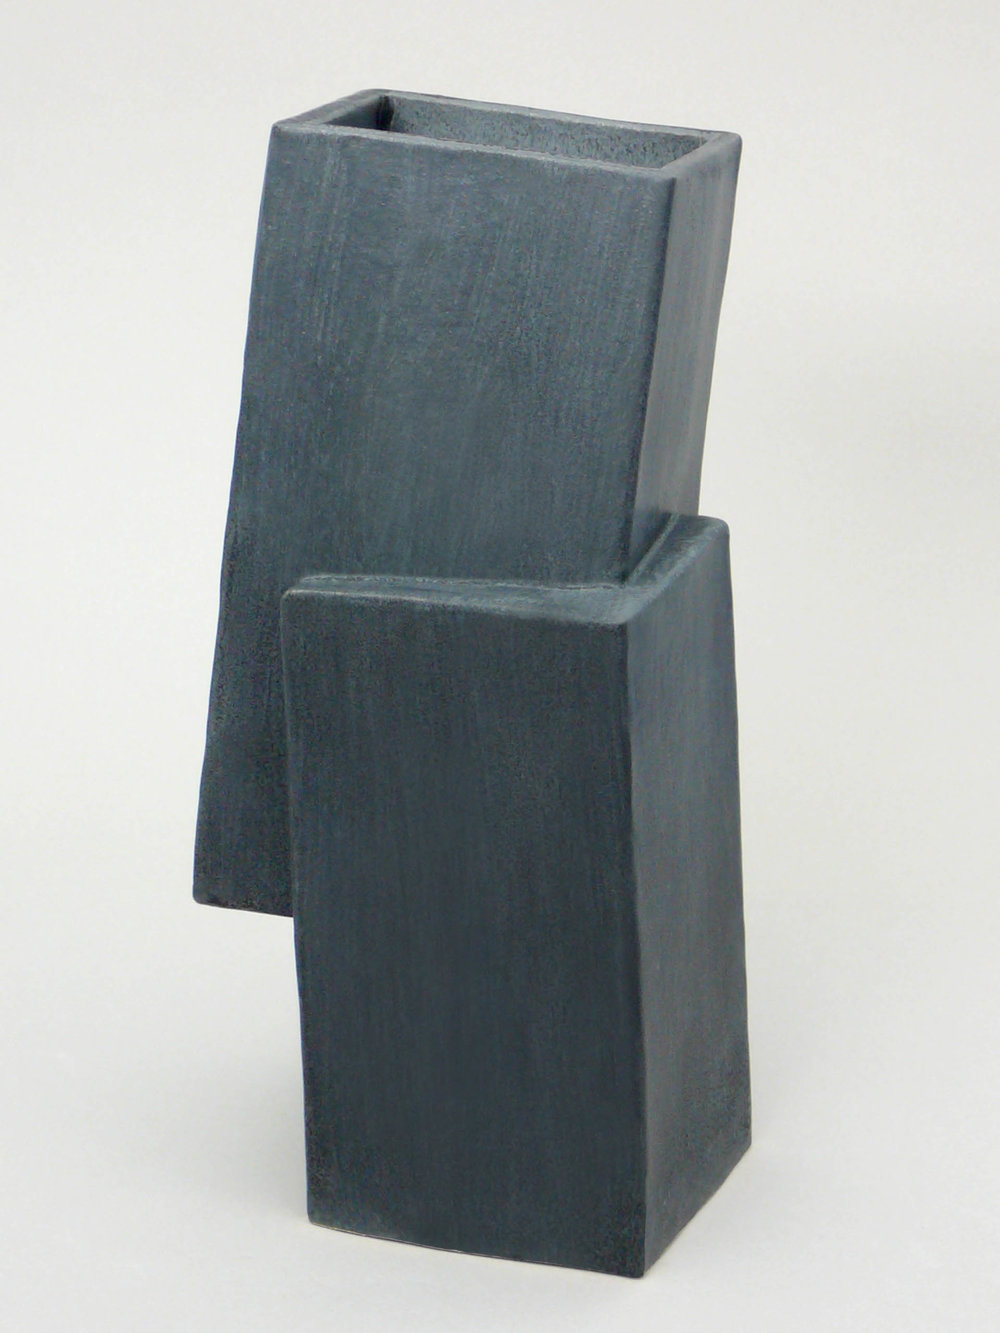 Intersections Vase #4